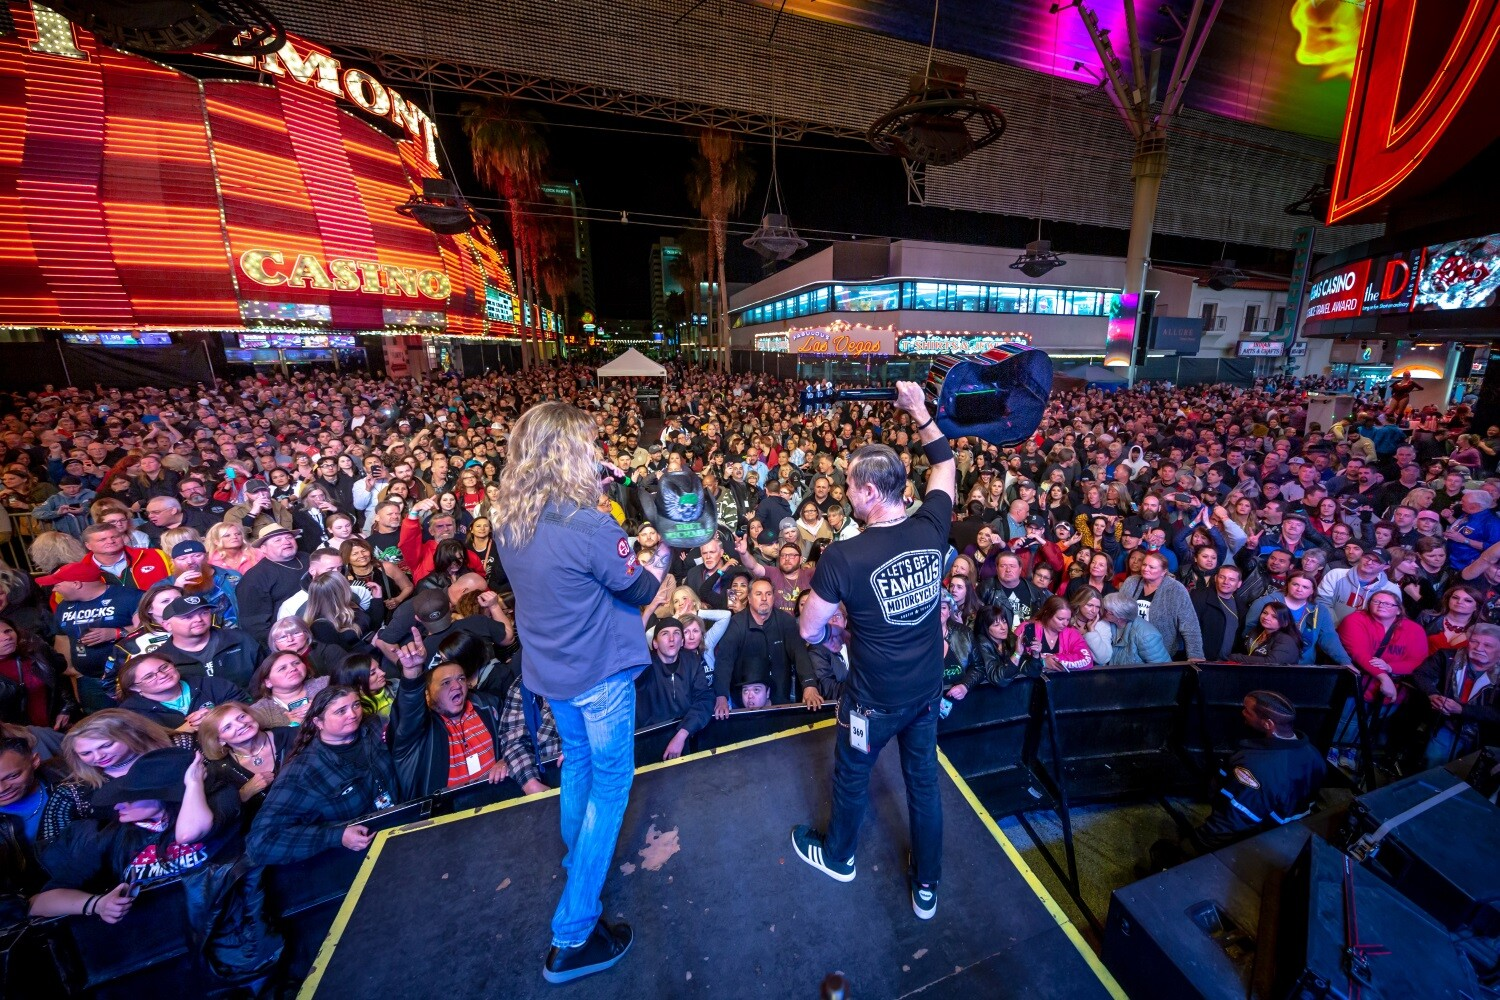 Fans rock out as Bret Michaels delivers high-powered performance at Fremont Street Experience, 2.22.20.jpg